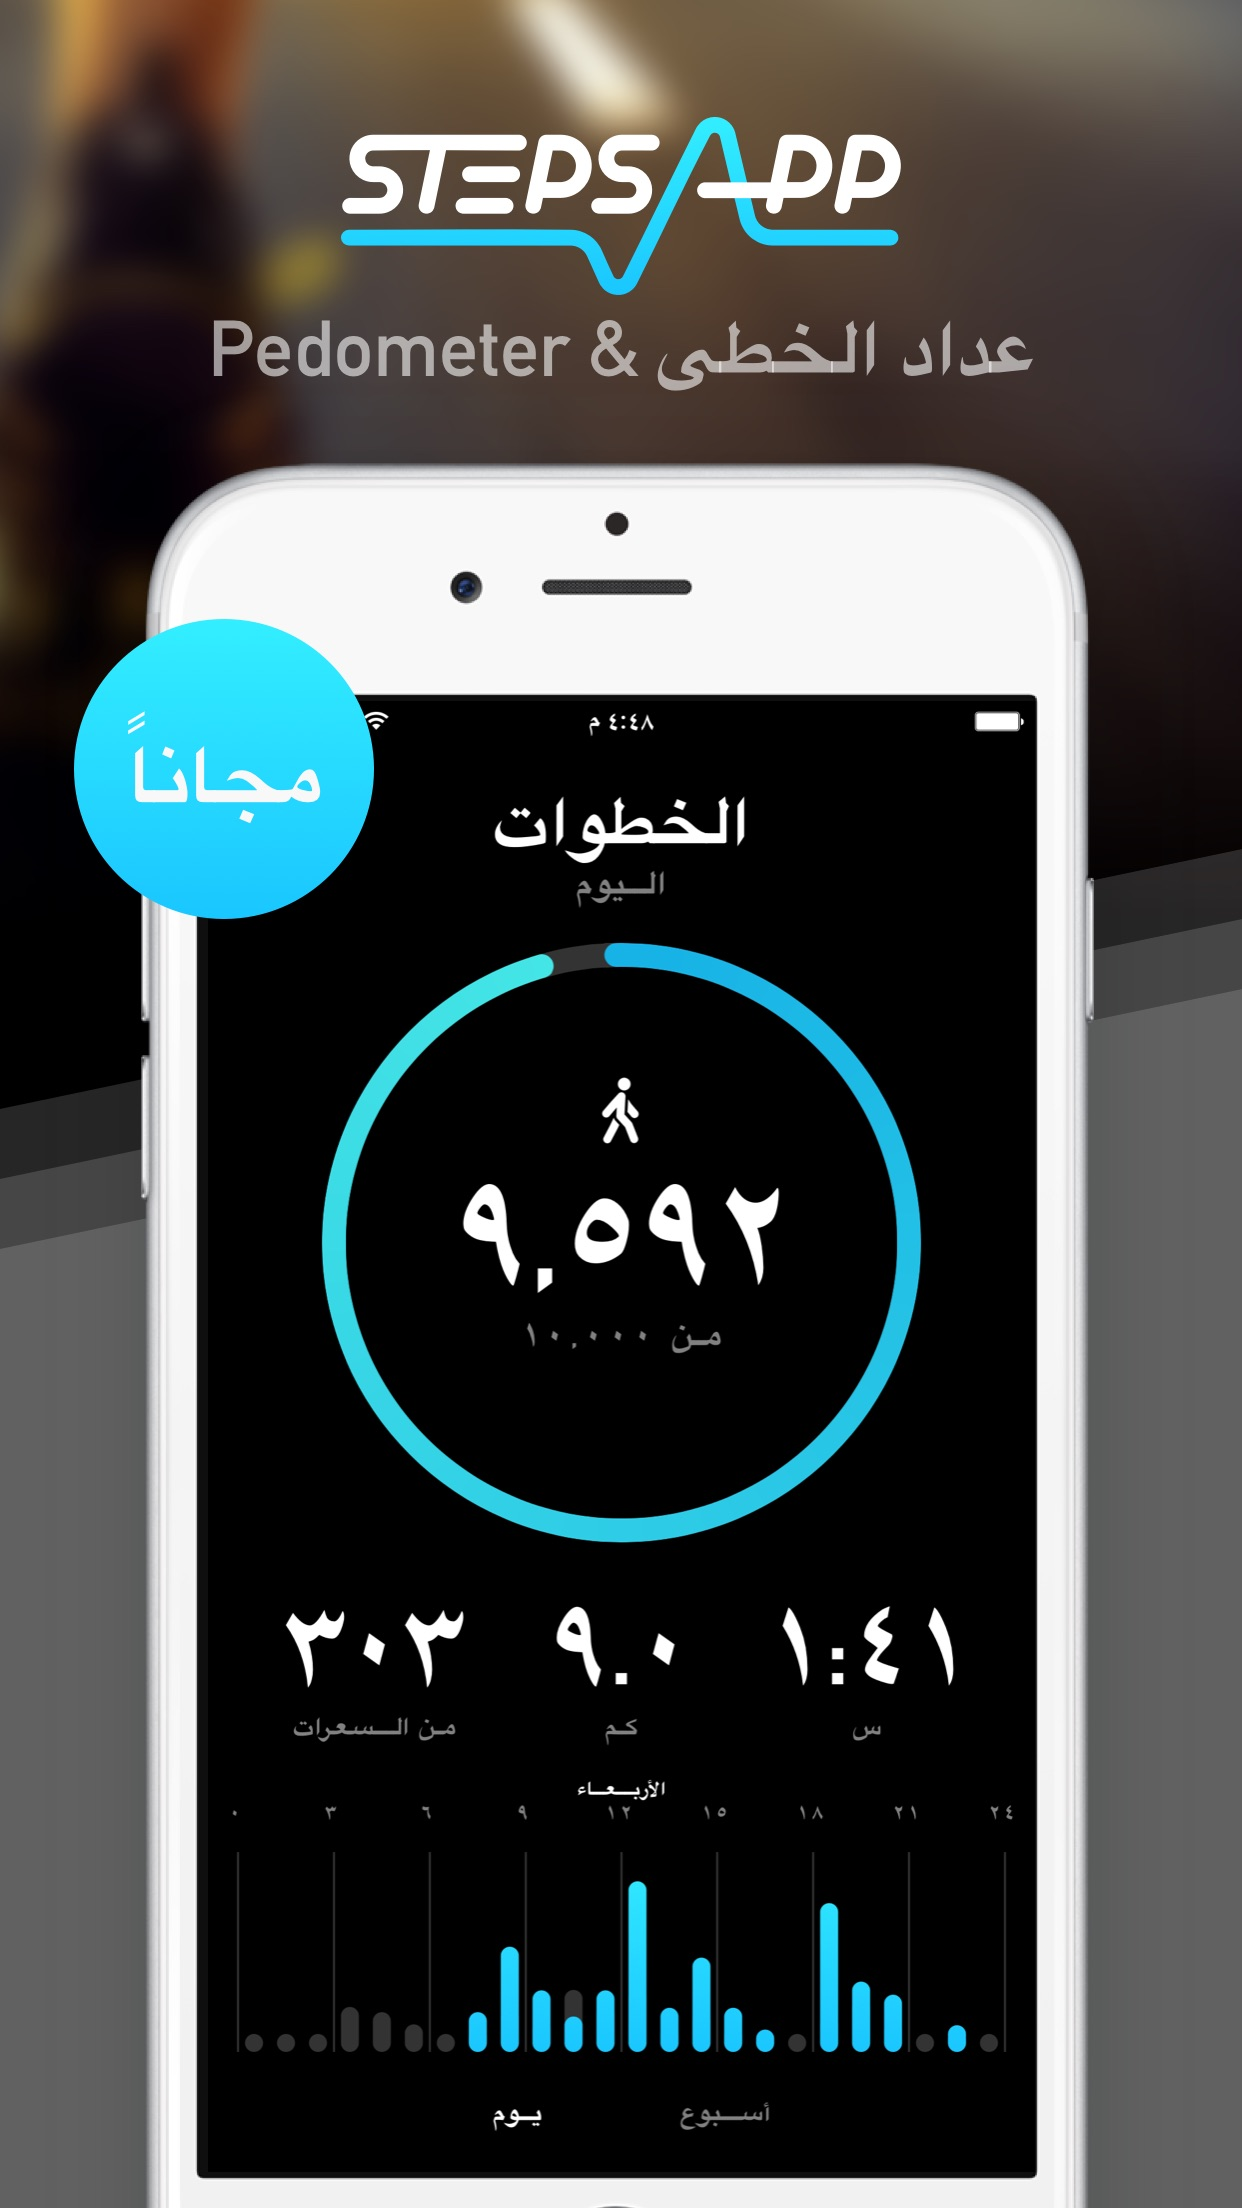 Pedometer by StepsApp Pro: Step Counter - Activity & Fitness Tracker Screenshot